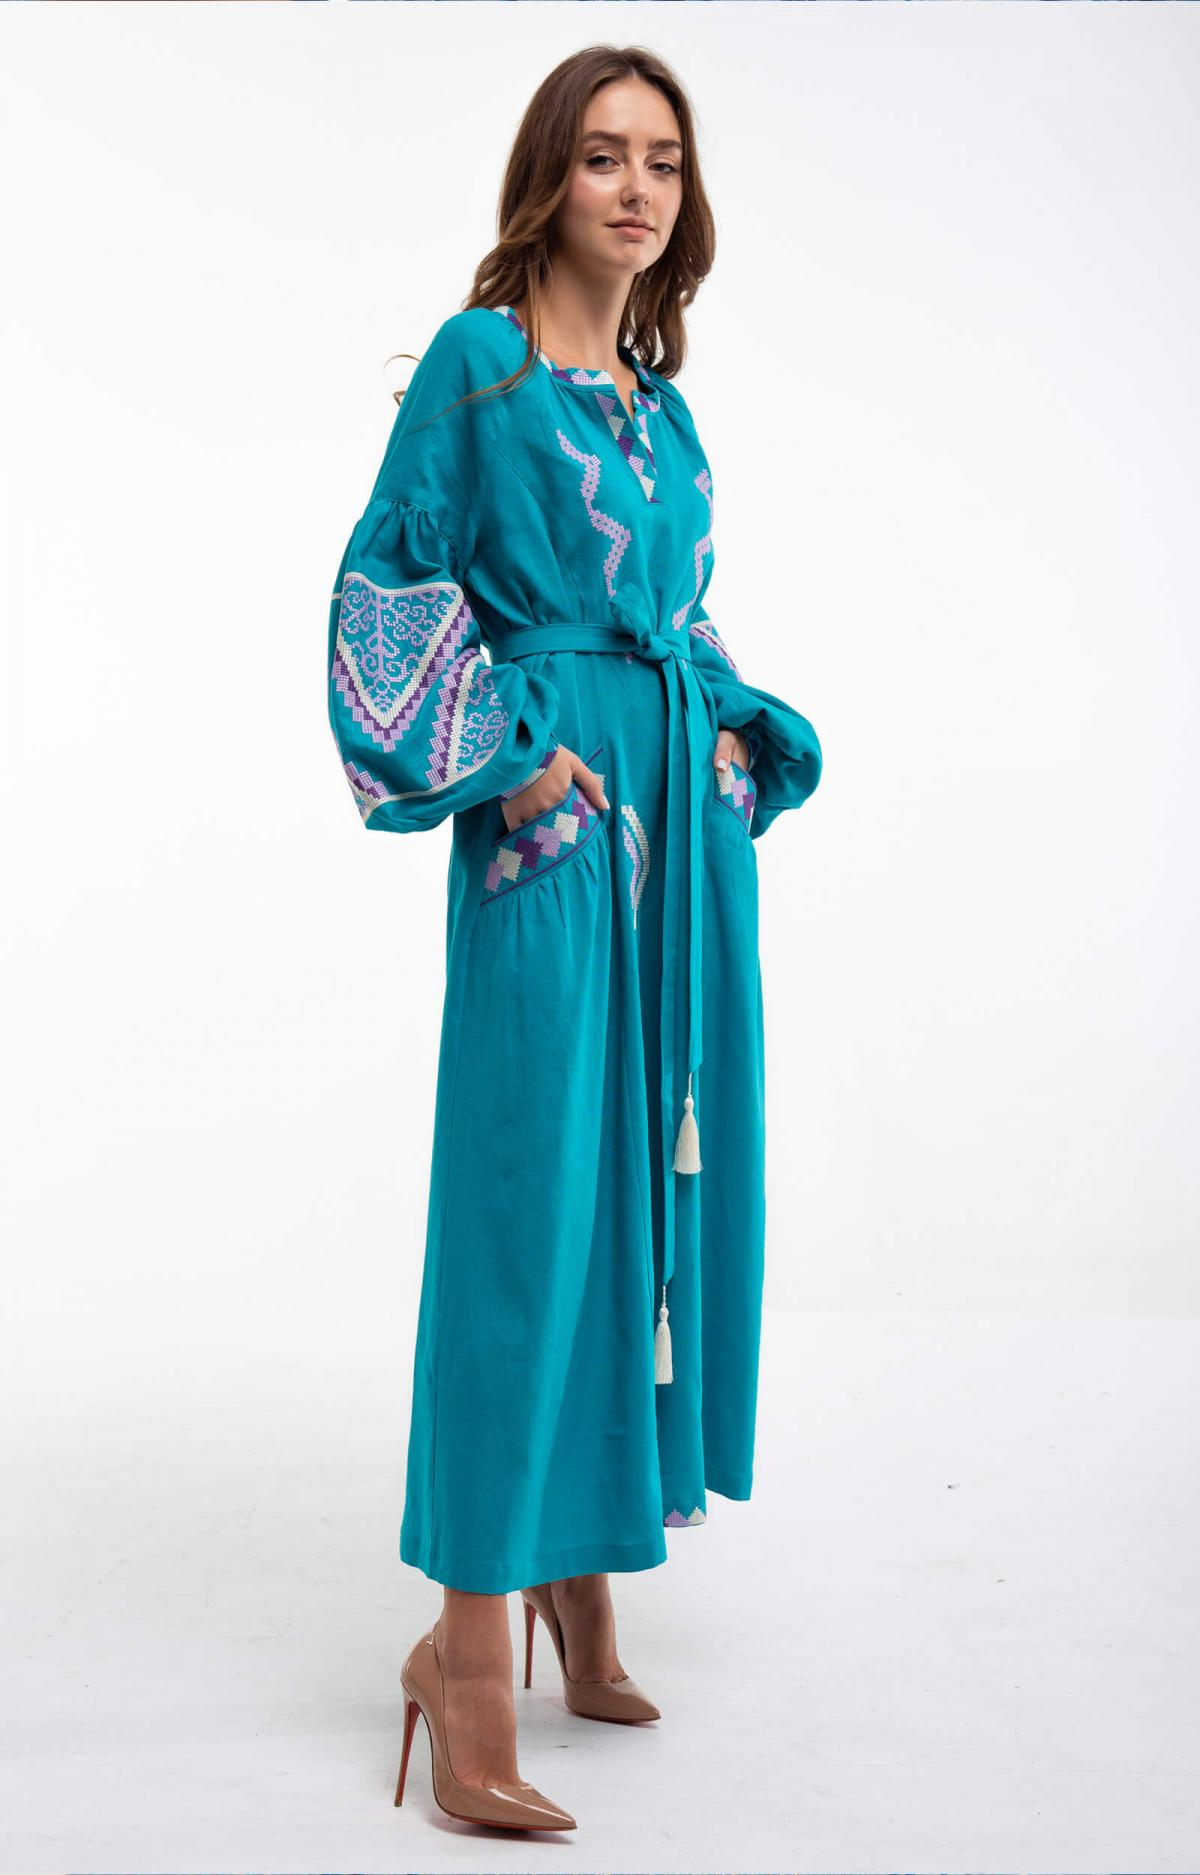 Embroidered long dress of turquoise color. Photo №4. | Narodnyi dim Ukraine